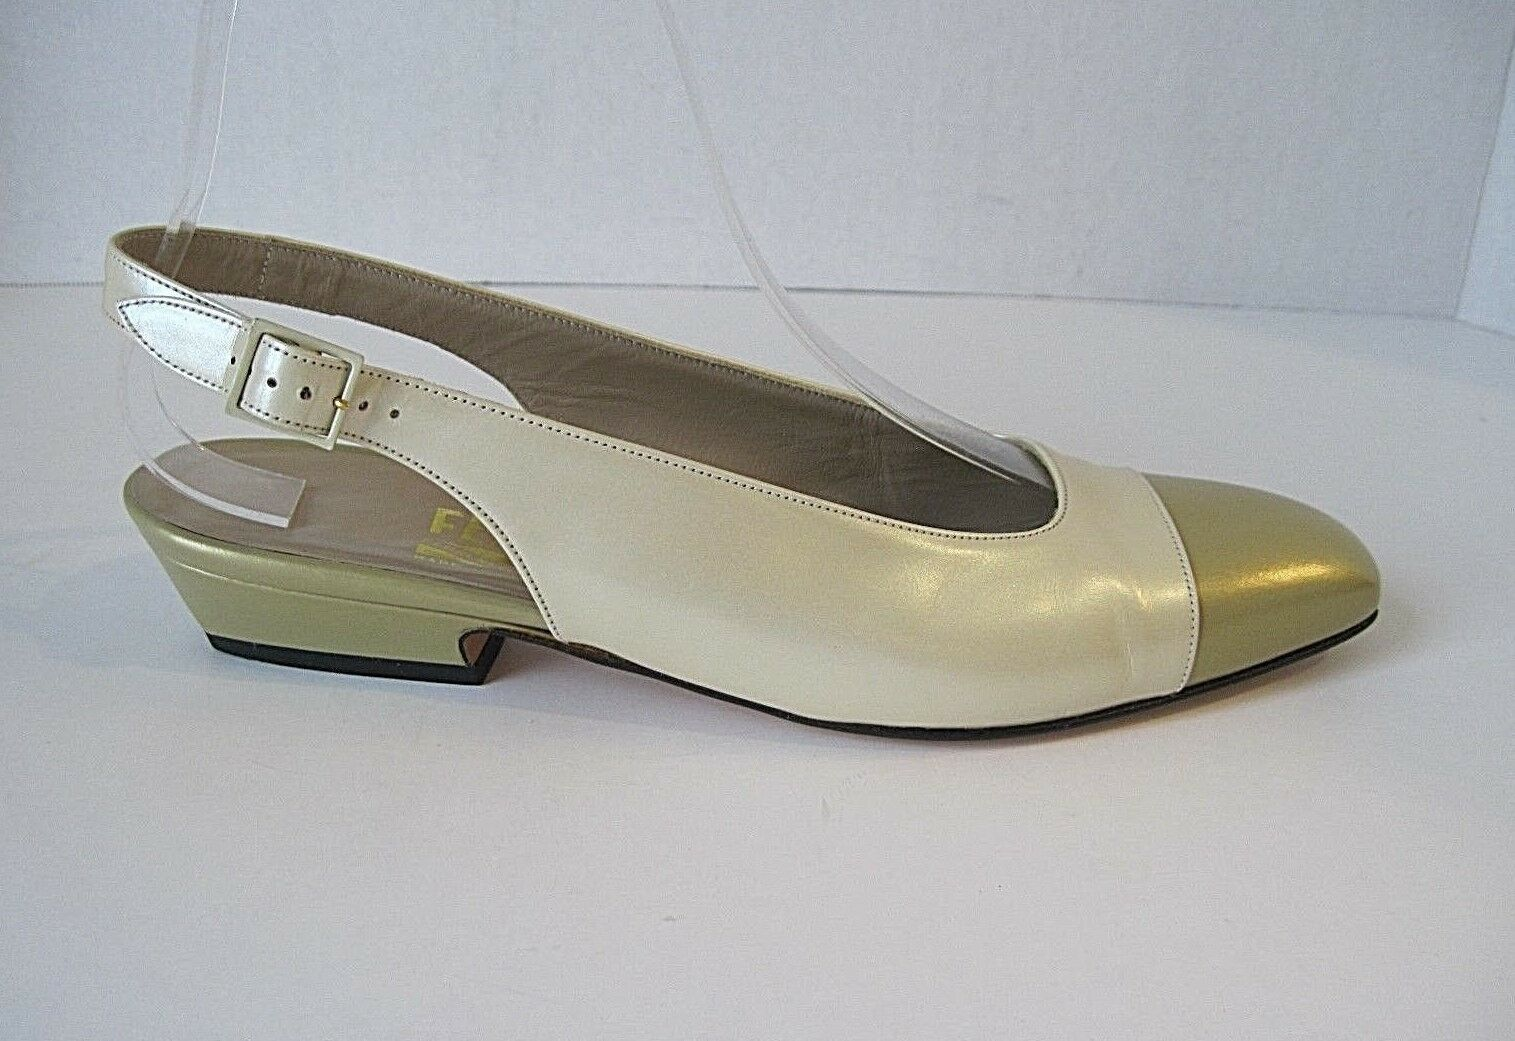 Salvatore Ferragamo Cream gold Leather Leather Leather Slingbacks Heels Size 6.5 AA, Excellent d0bf65